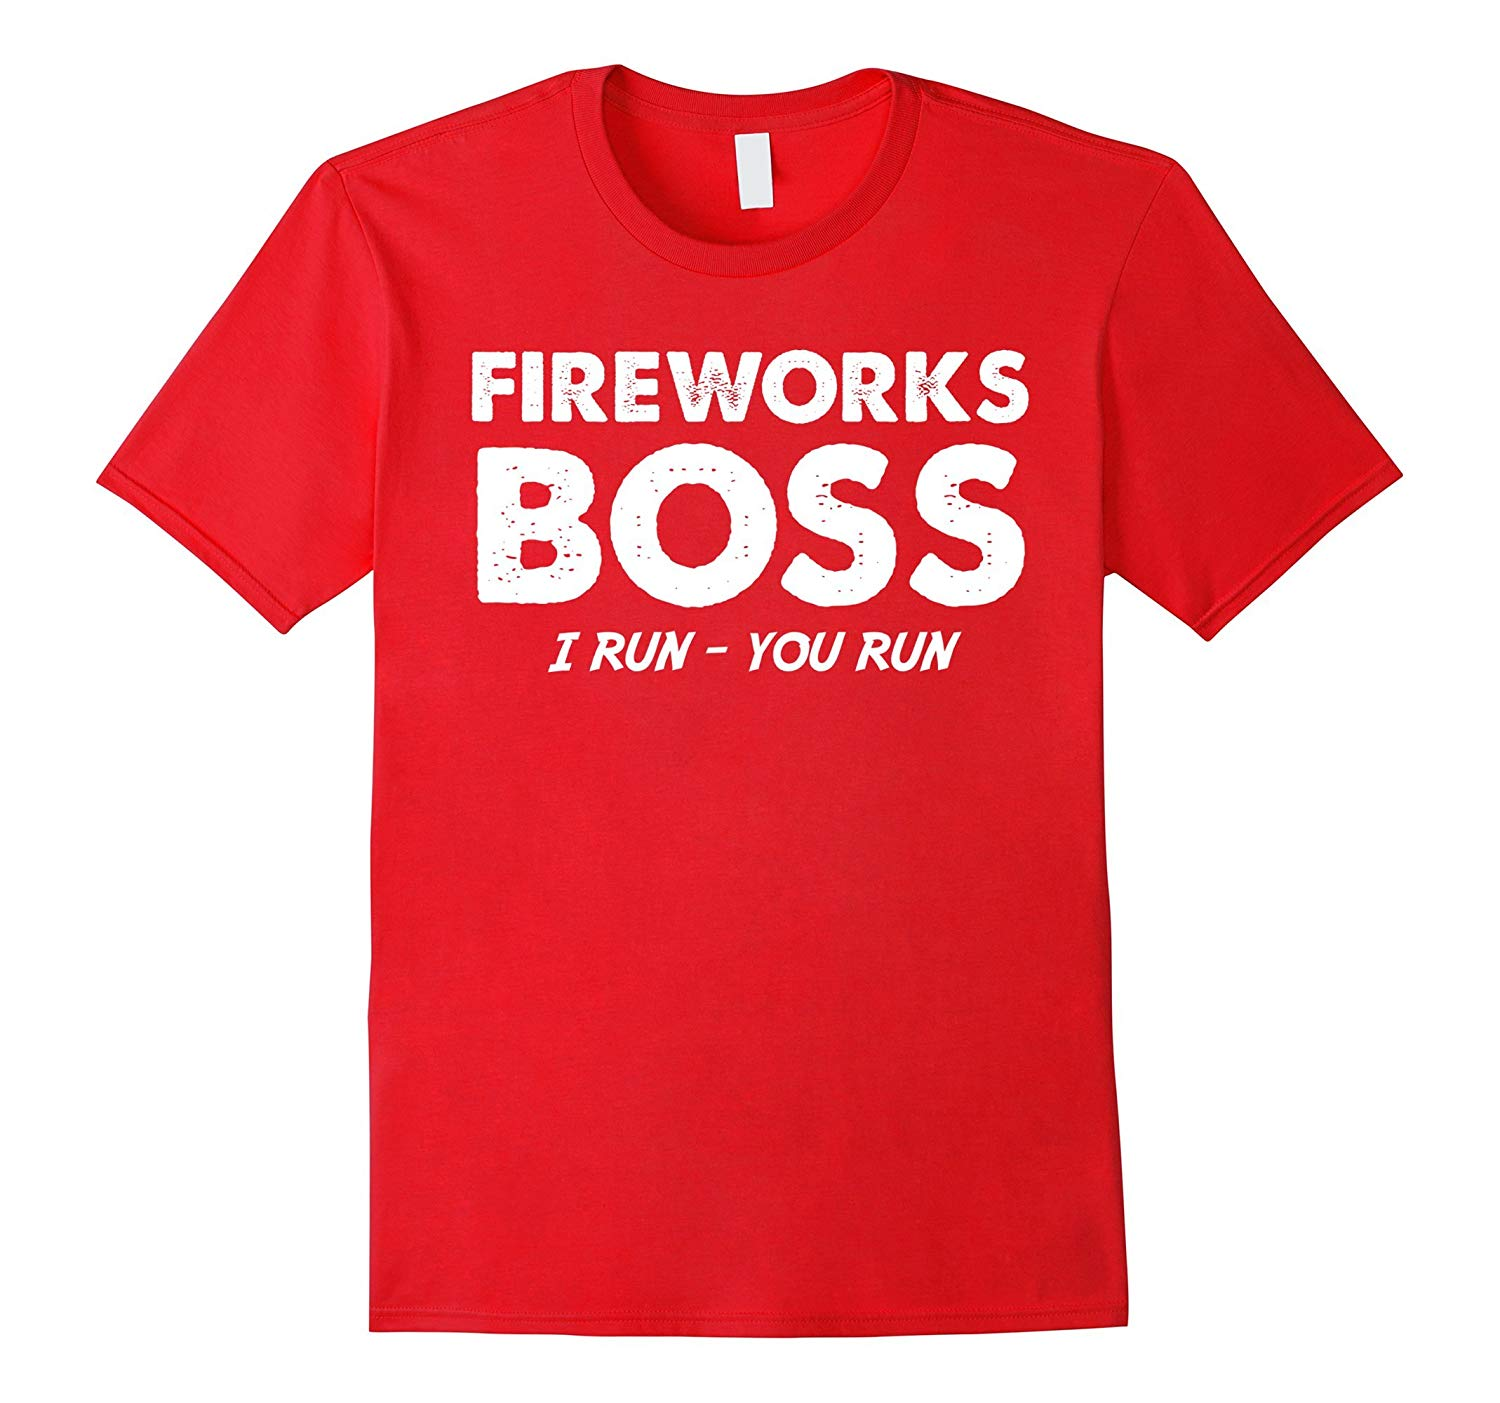 Funny FIREWORKS BOSS I RUN YOU RUN quote 4th of July gift